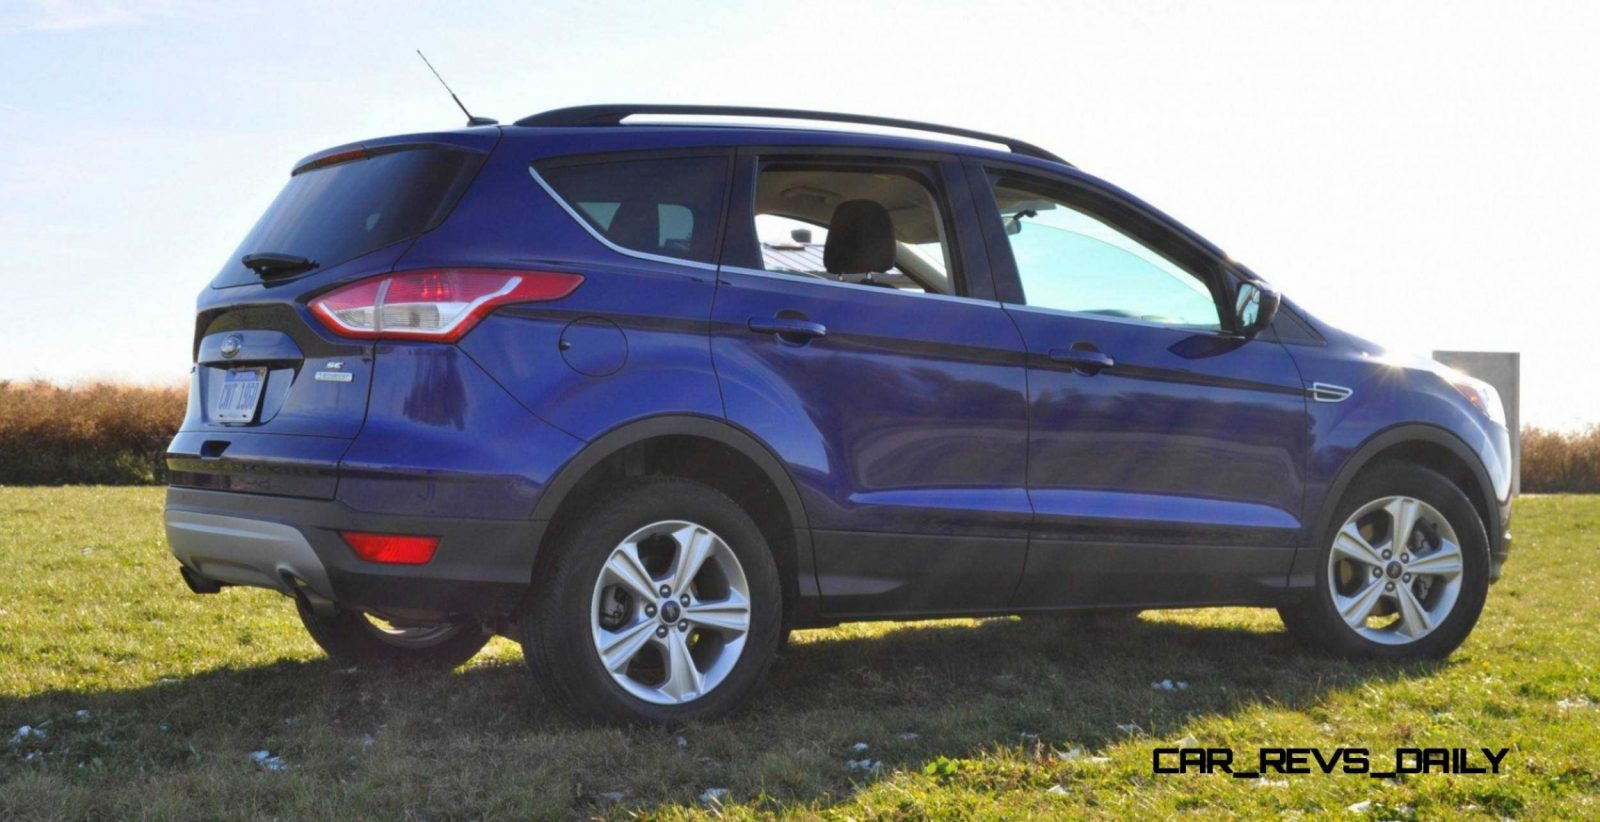 2014 ford escape 1 6l ecoboost in deep impact blue 69 all new photos and 2 driving videos. Black Bedroom Furniture Sets. Home Design Ideas